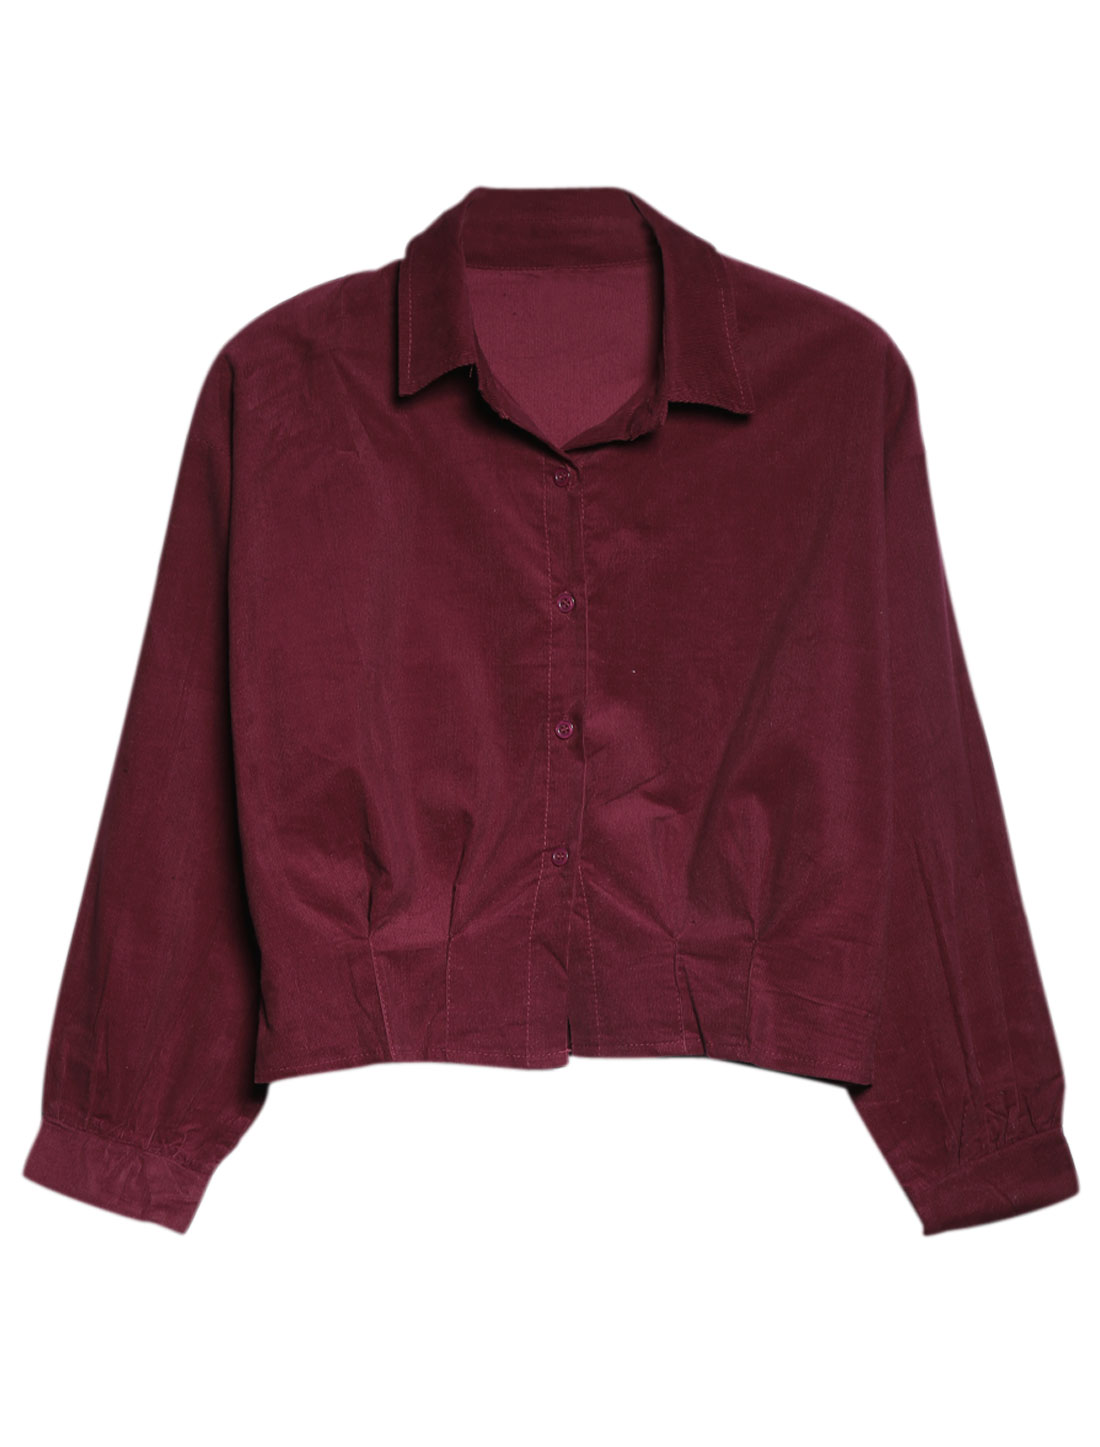 Lady Button Closure Front Long Sleeve Leisure Shirt Burgundy XS